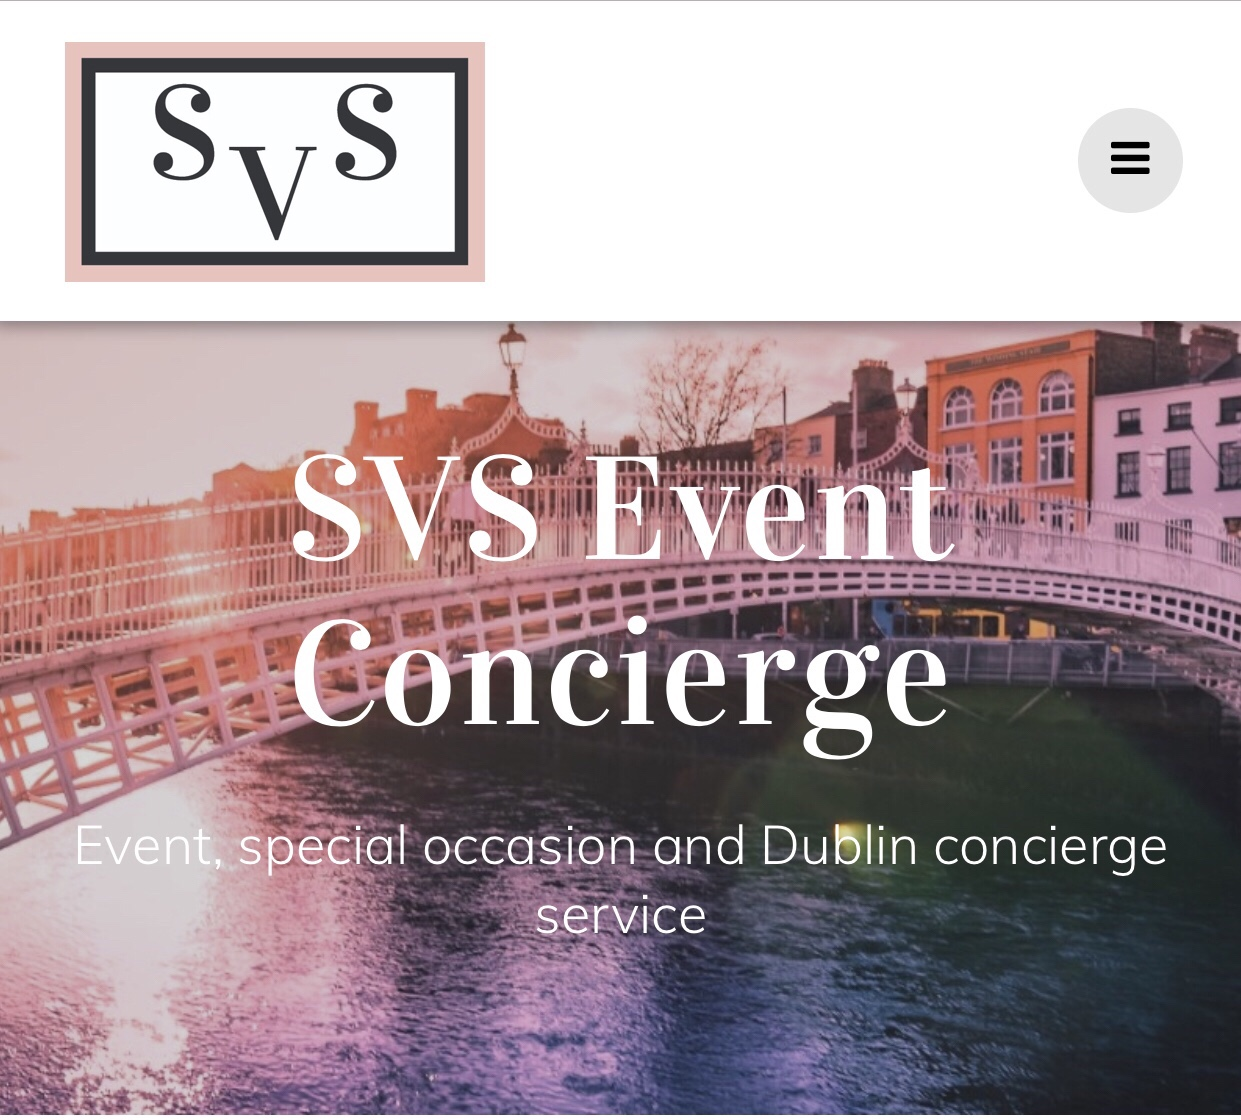 SVS Event Concierge website now live!